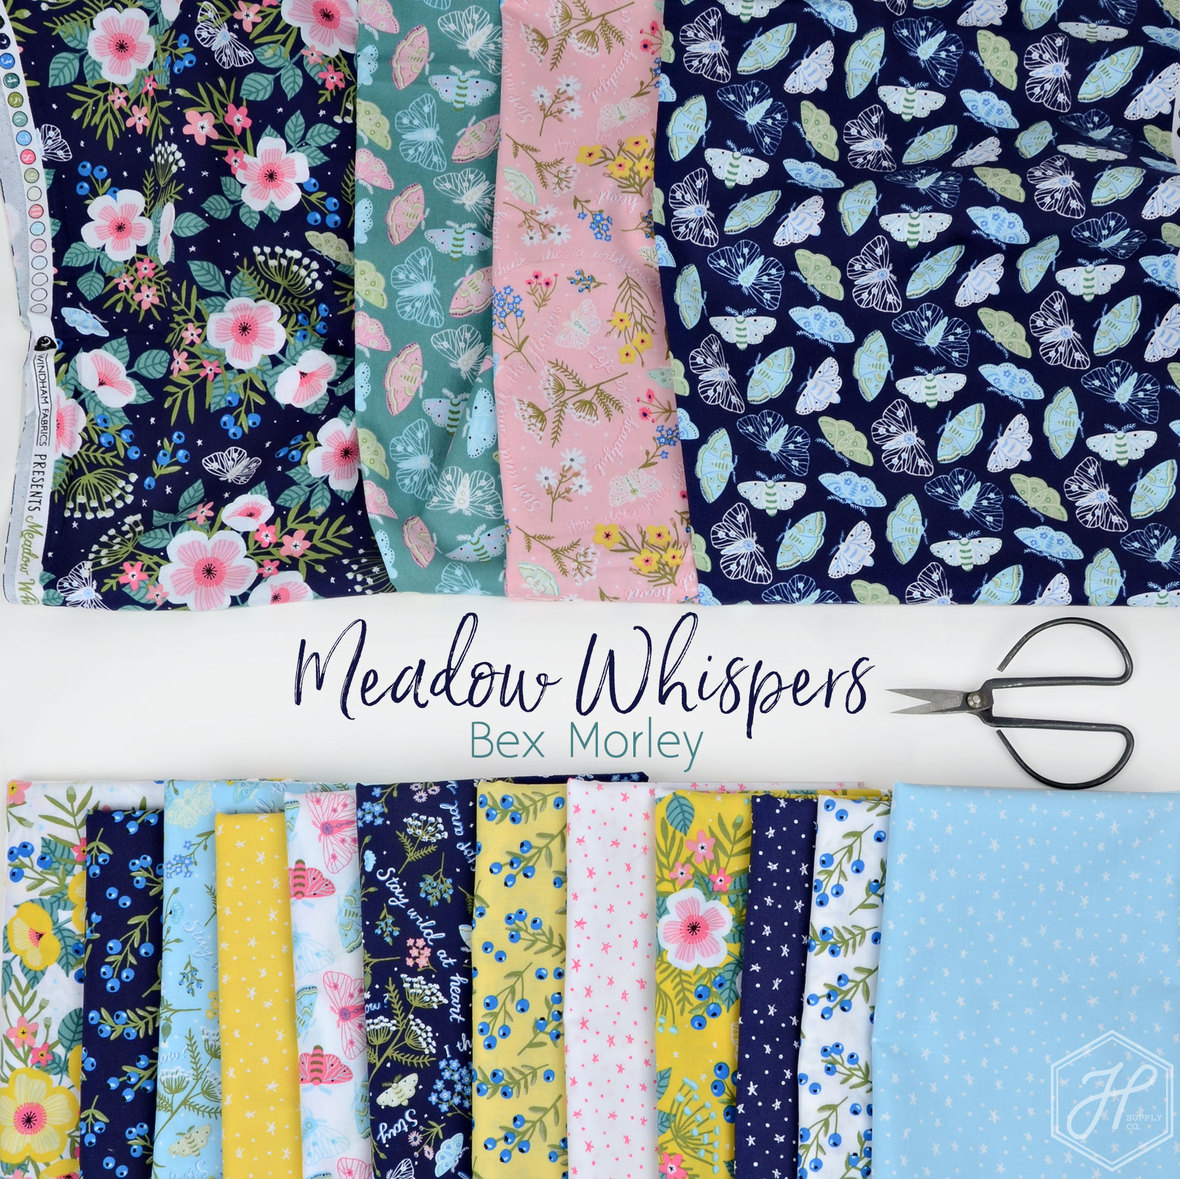 Meadow-Whispers-Bex-Morley-for-Windham-at-Hawthorne-Supply-Co.